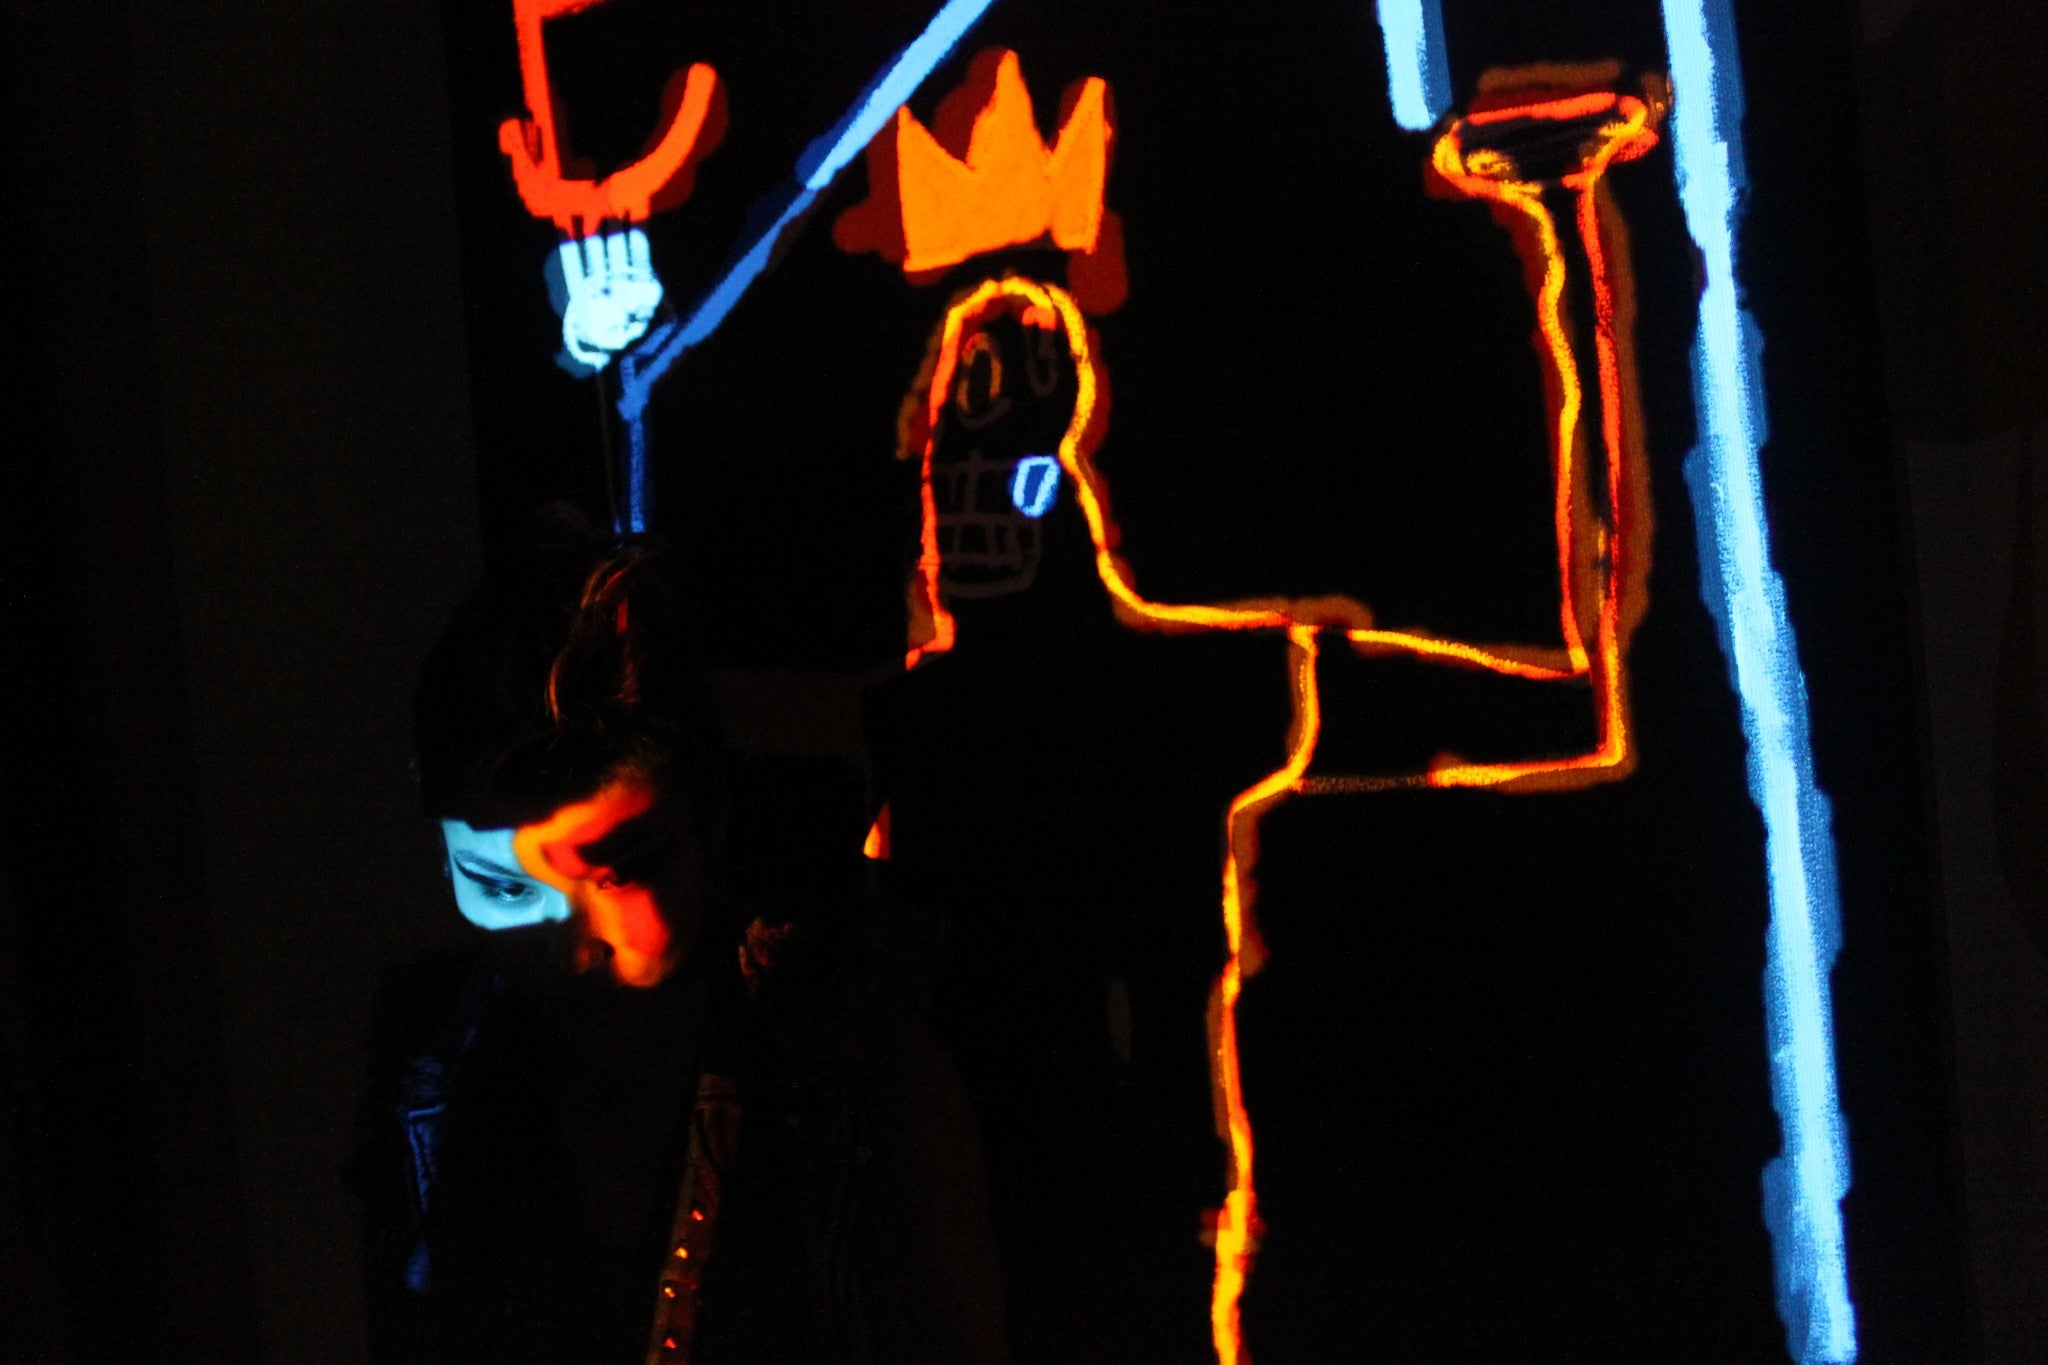 Light Painting with Basquiat & the Japanese Princess